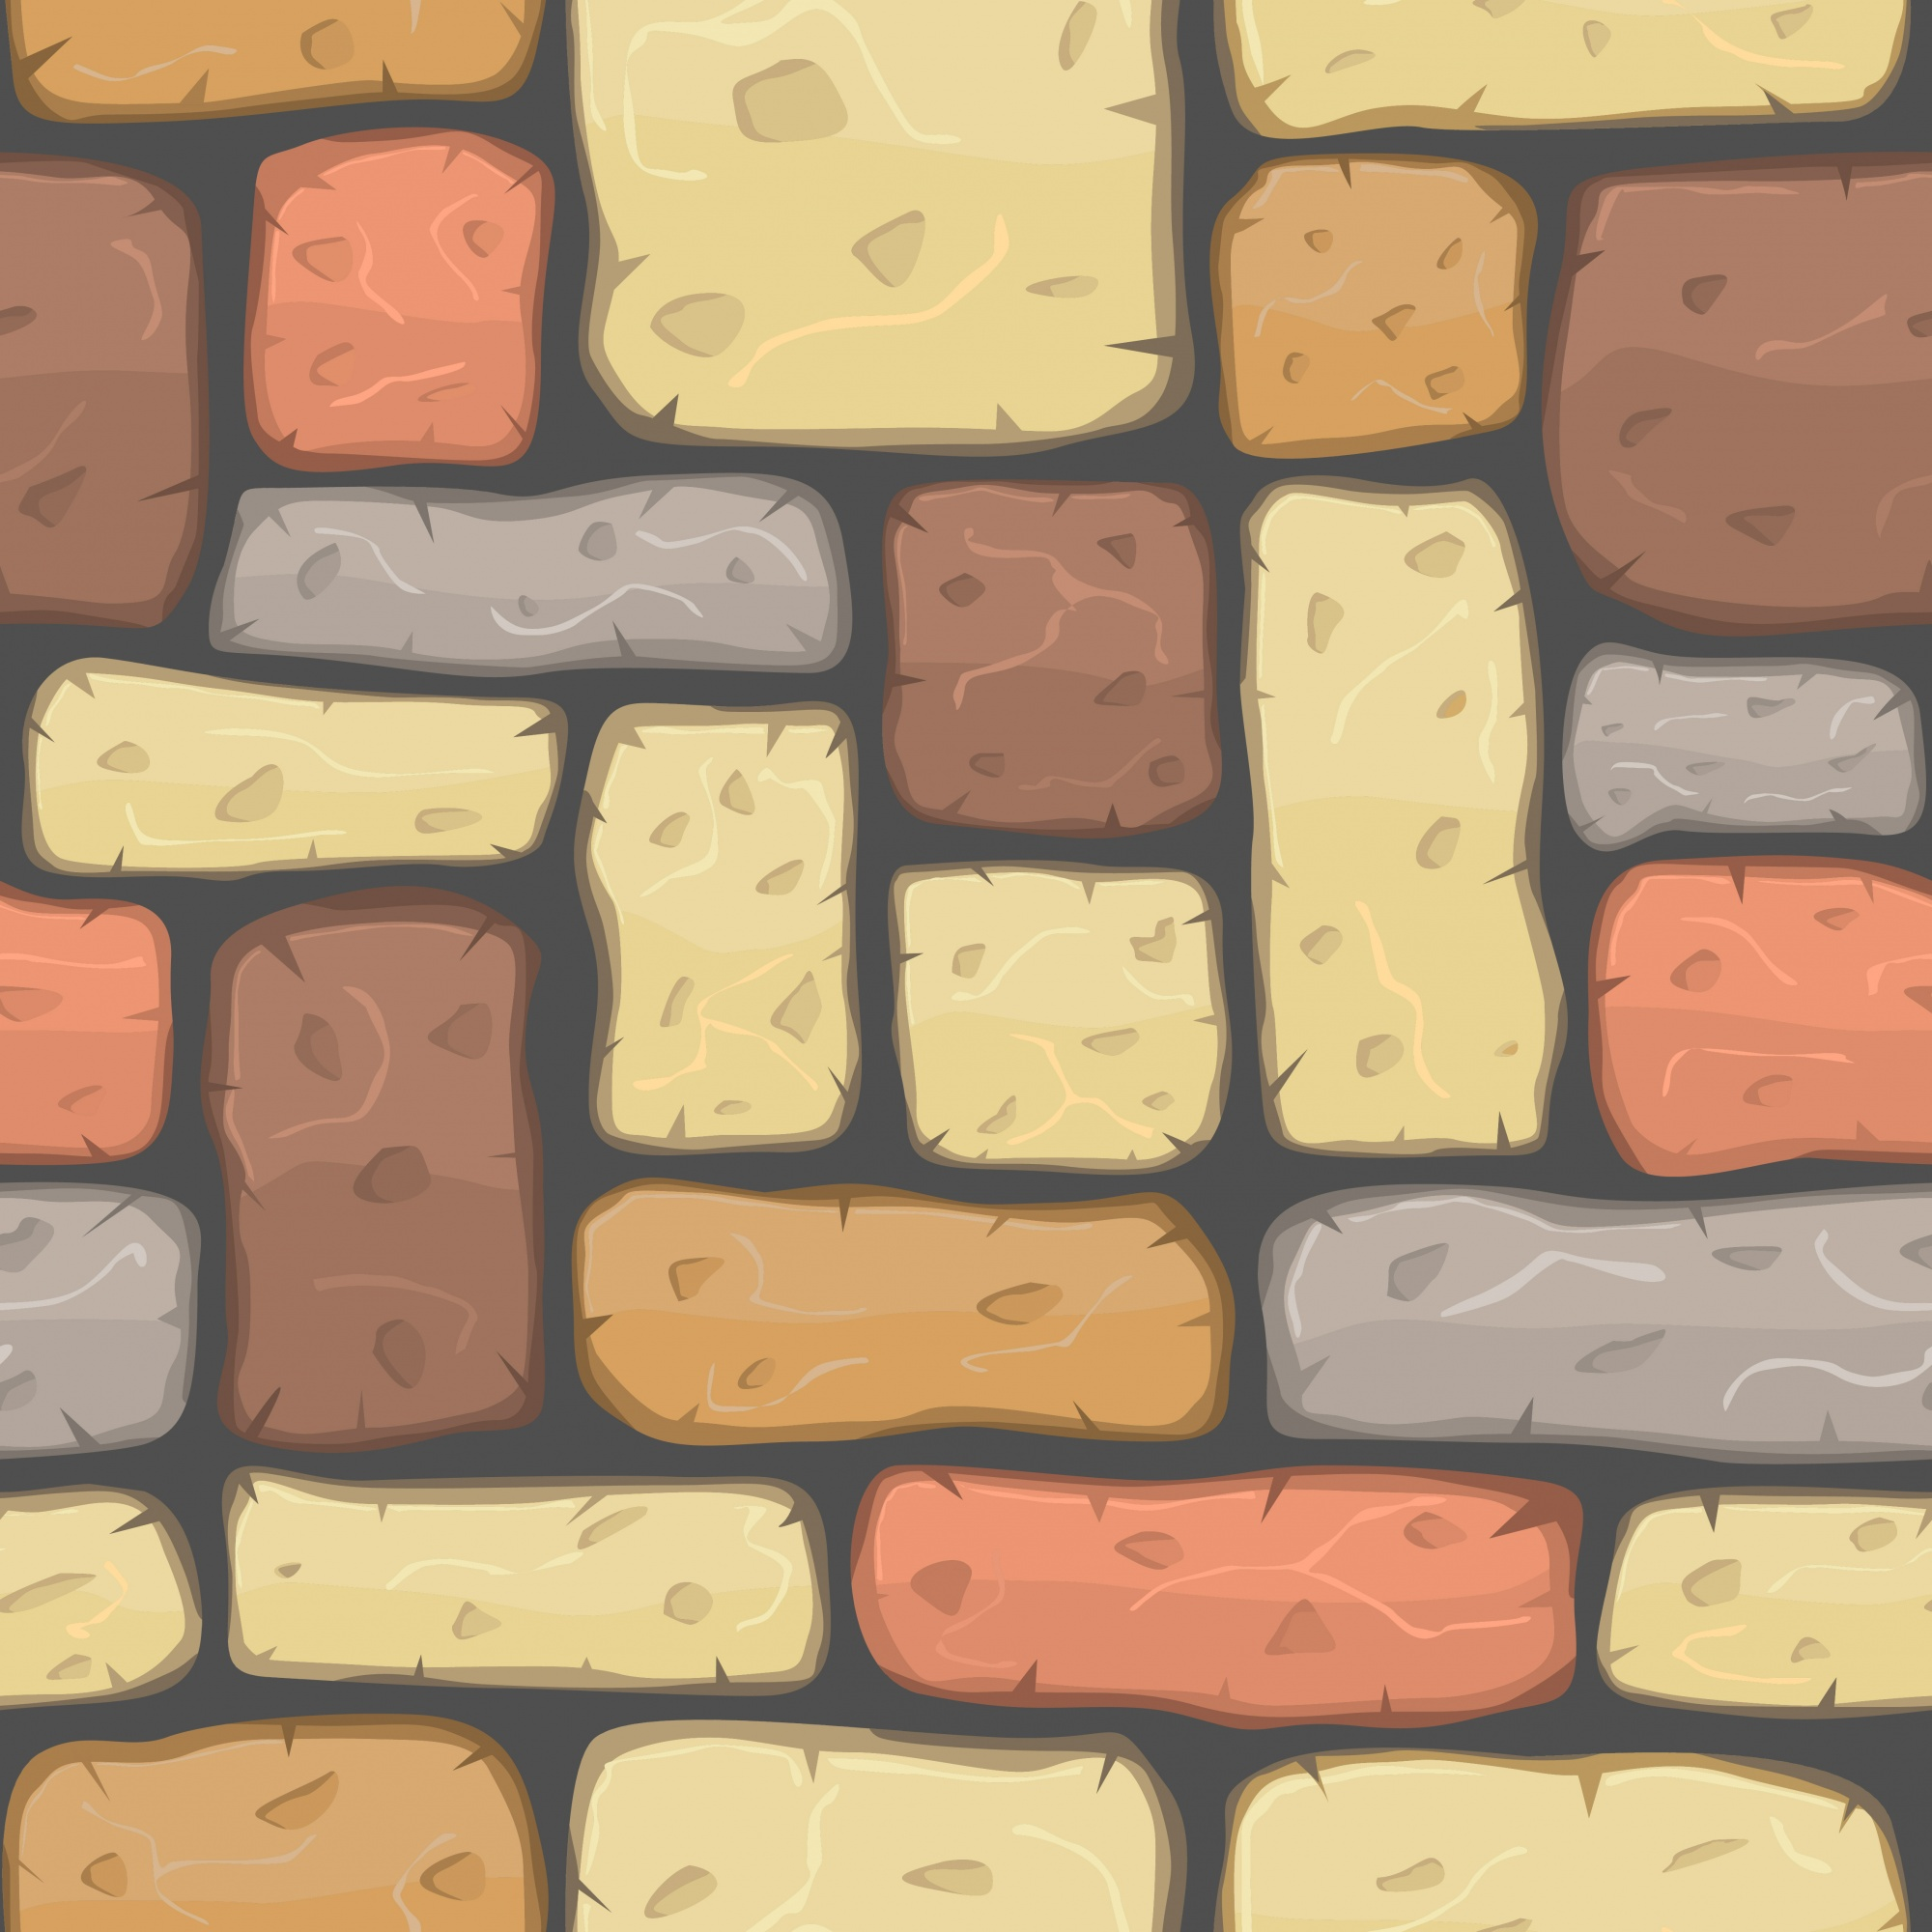 Colorful stone wall with cartoon style